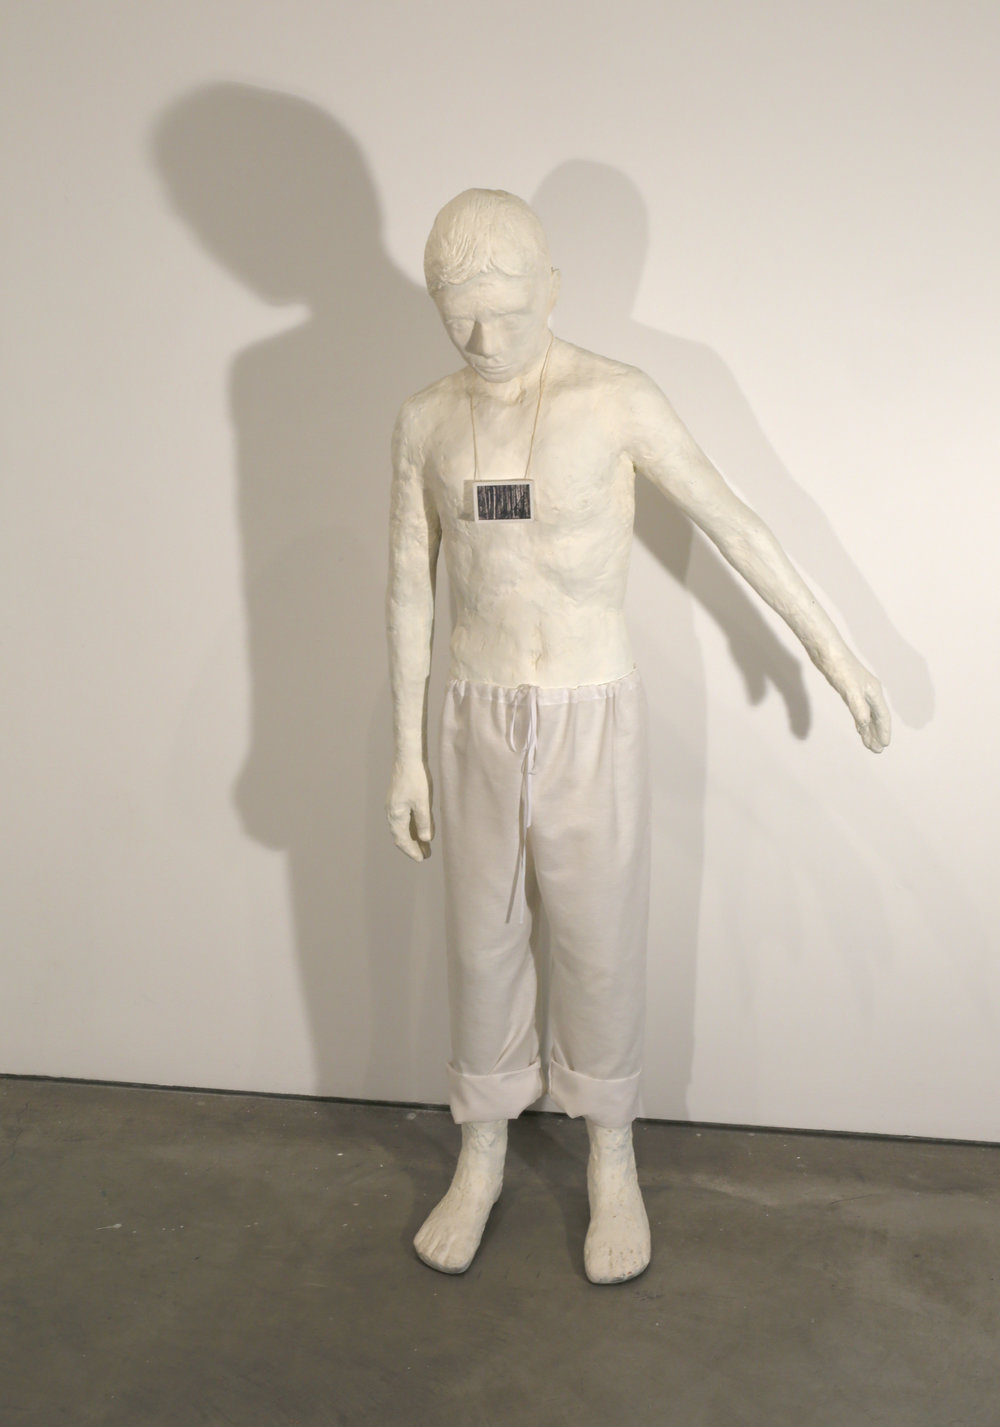 Enrique Martinez Celaya   The Boy Raising His Arm , 2007  bronze and muslin  160 x 81 x 23 cm